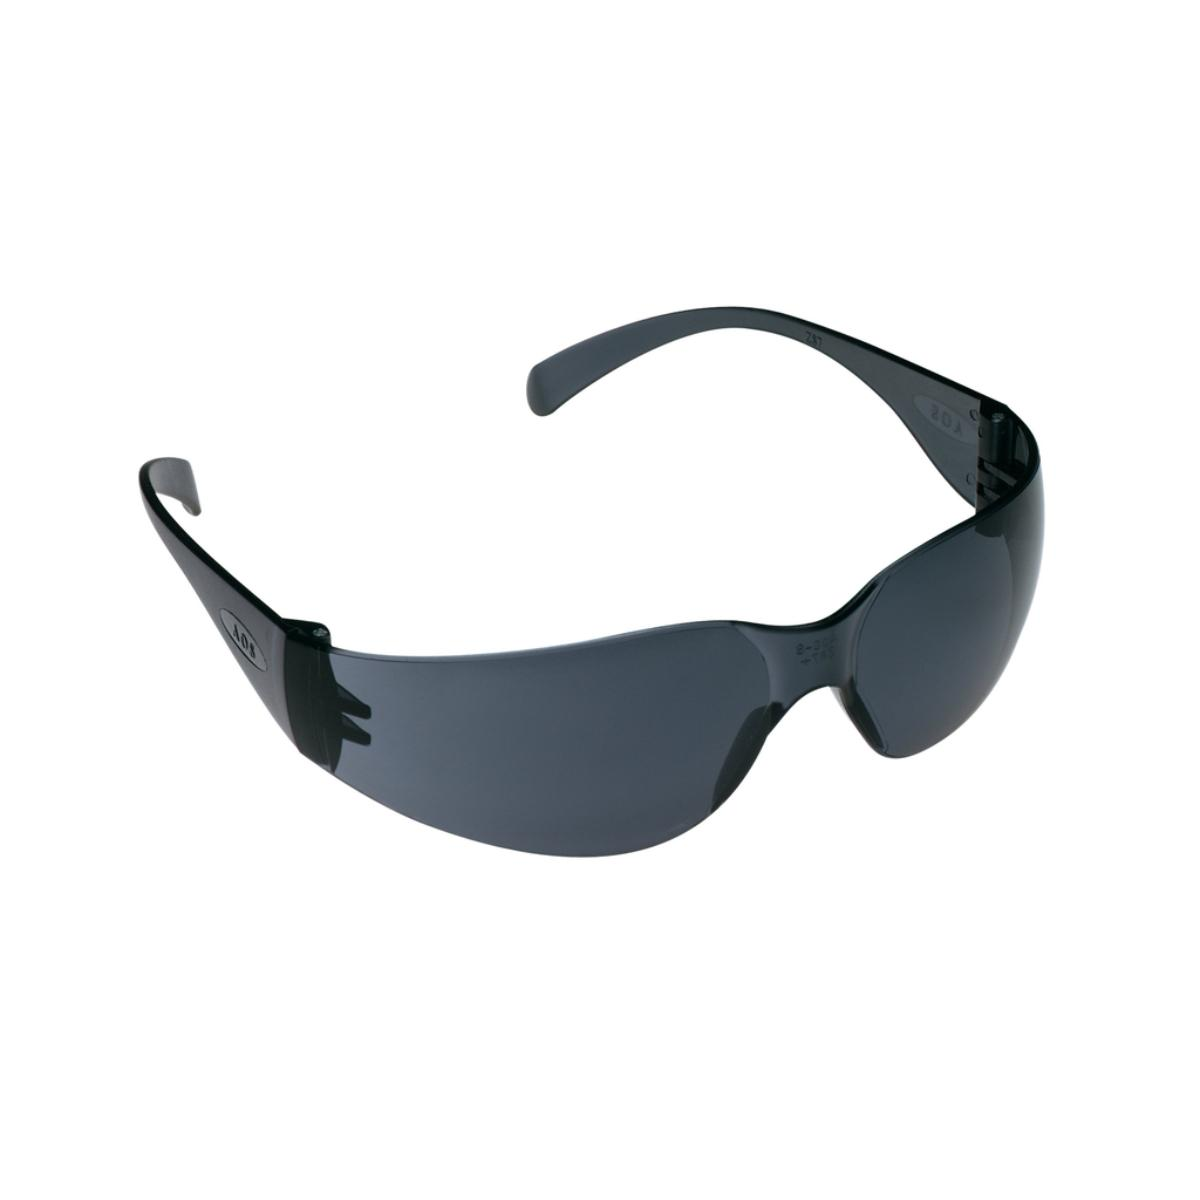 "3Mâ""¢ Virtuaâ""¢ Protective Eyewear 11327-00000-20 Gray Hard Coat Lens, Gray Temple"